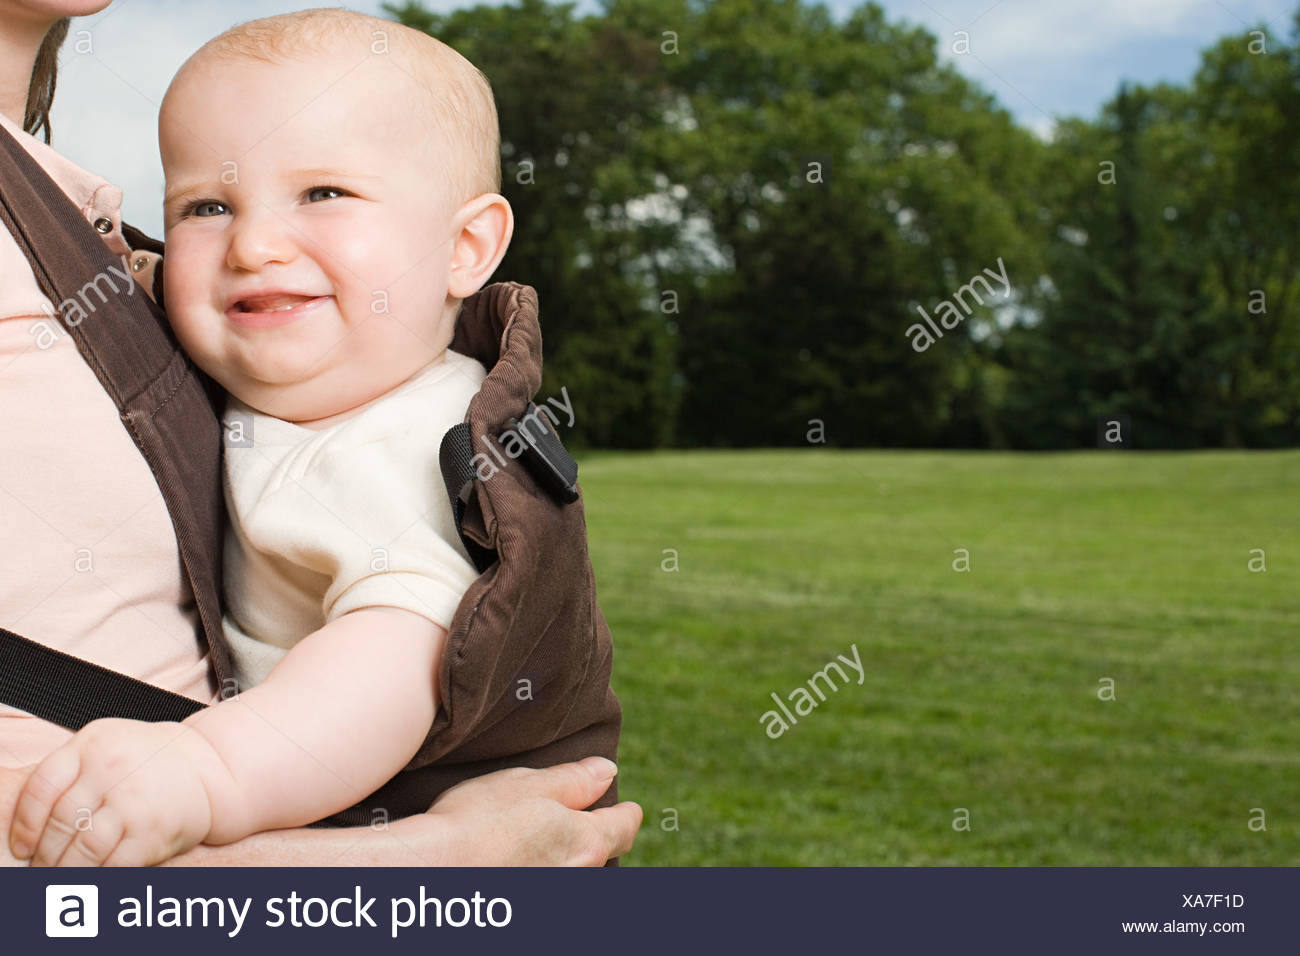 Baby in baby carrier - Stock Image